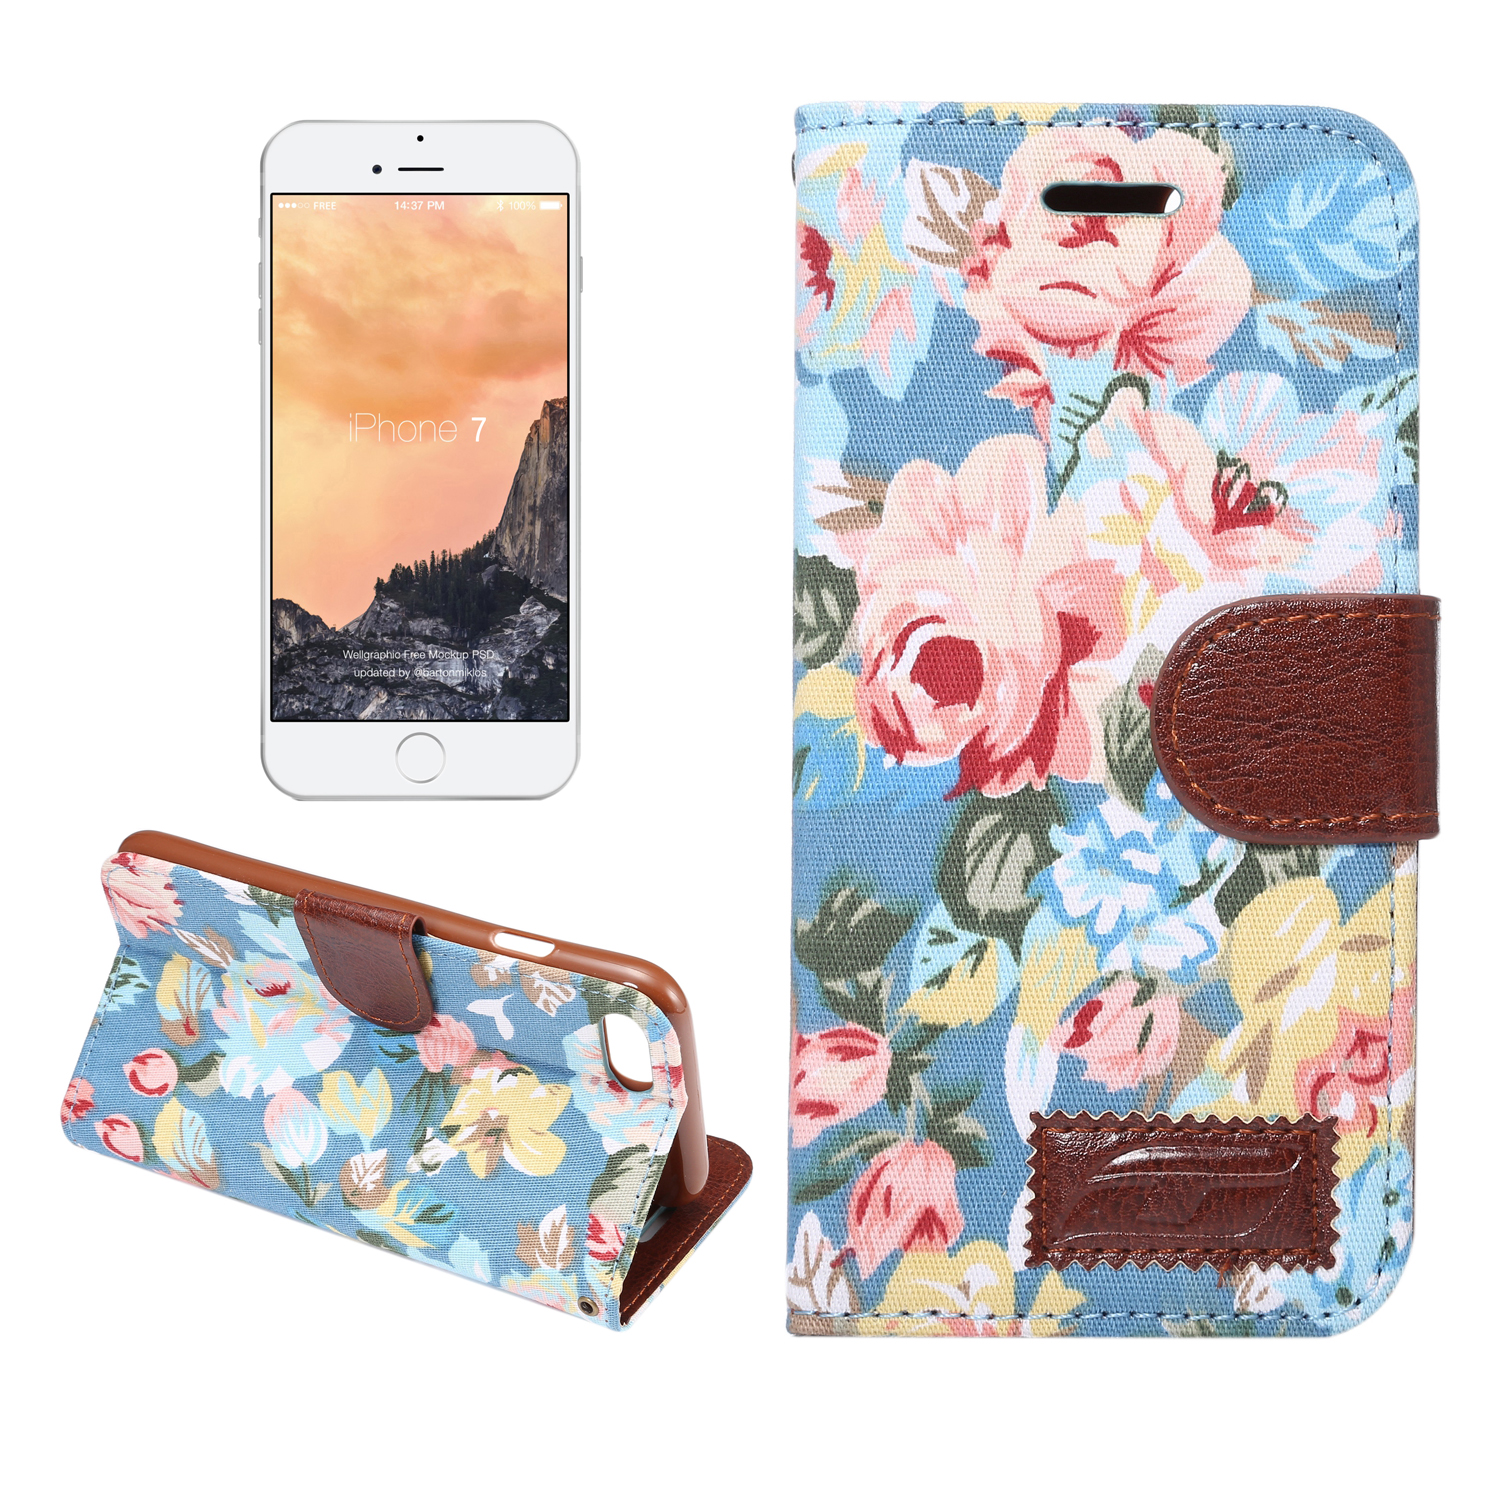 Bakeey Flower Cloth Card Slot Flip Bracket Protective Case for iPhone X/6/6S Plus/7/8 Plus